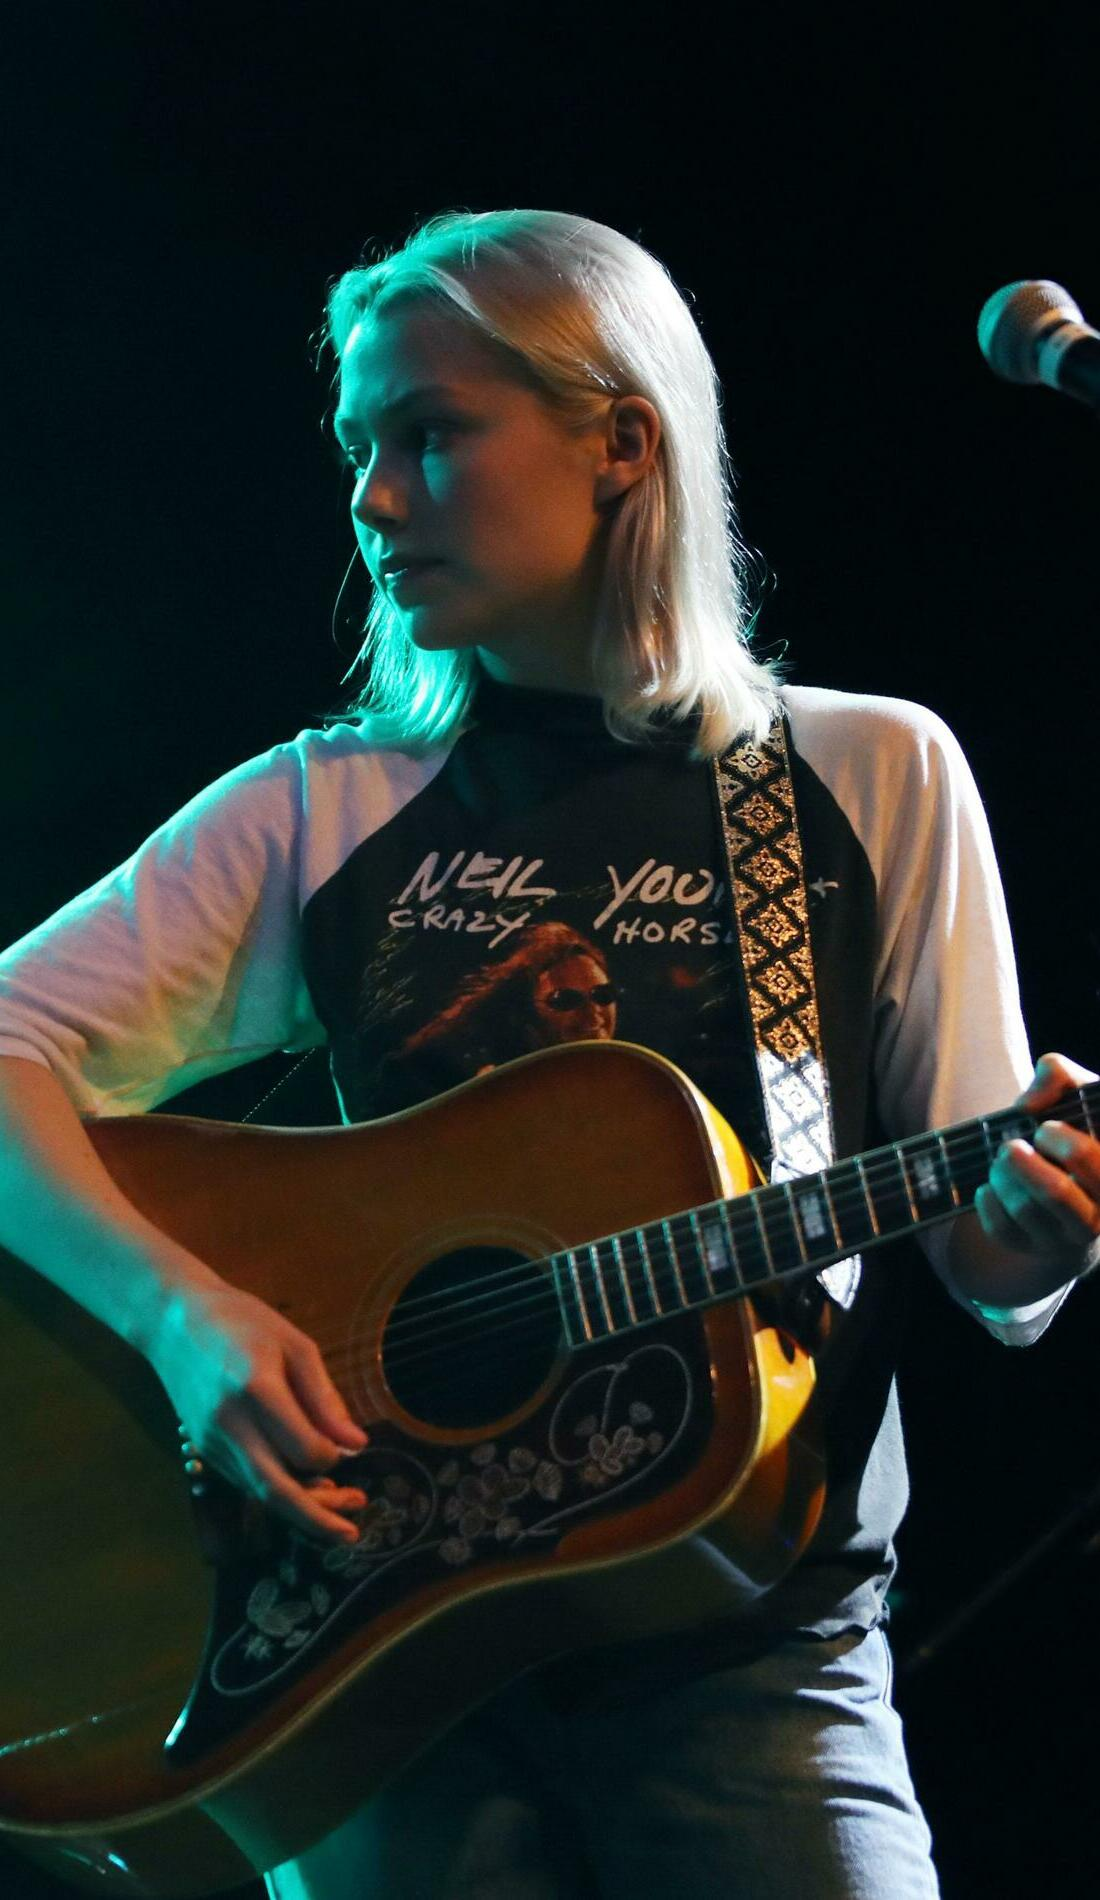 A Phoebe Bridgers live event